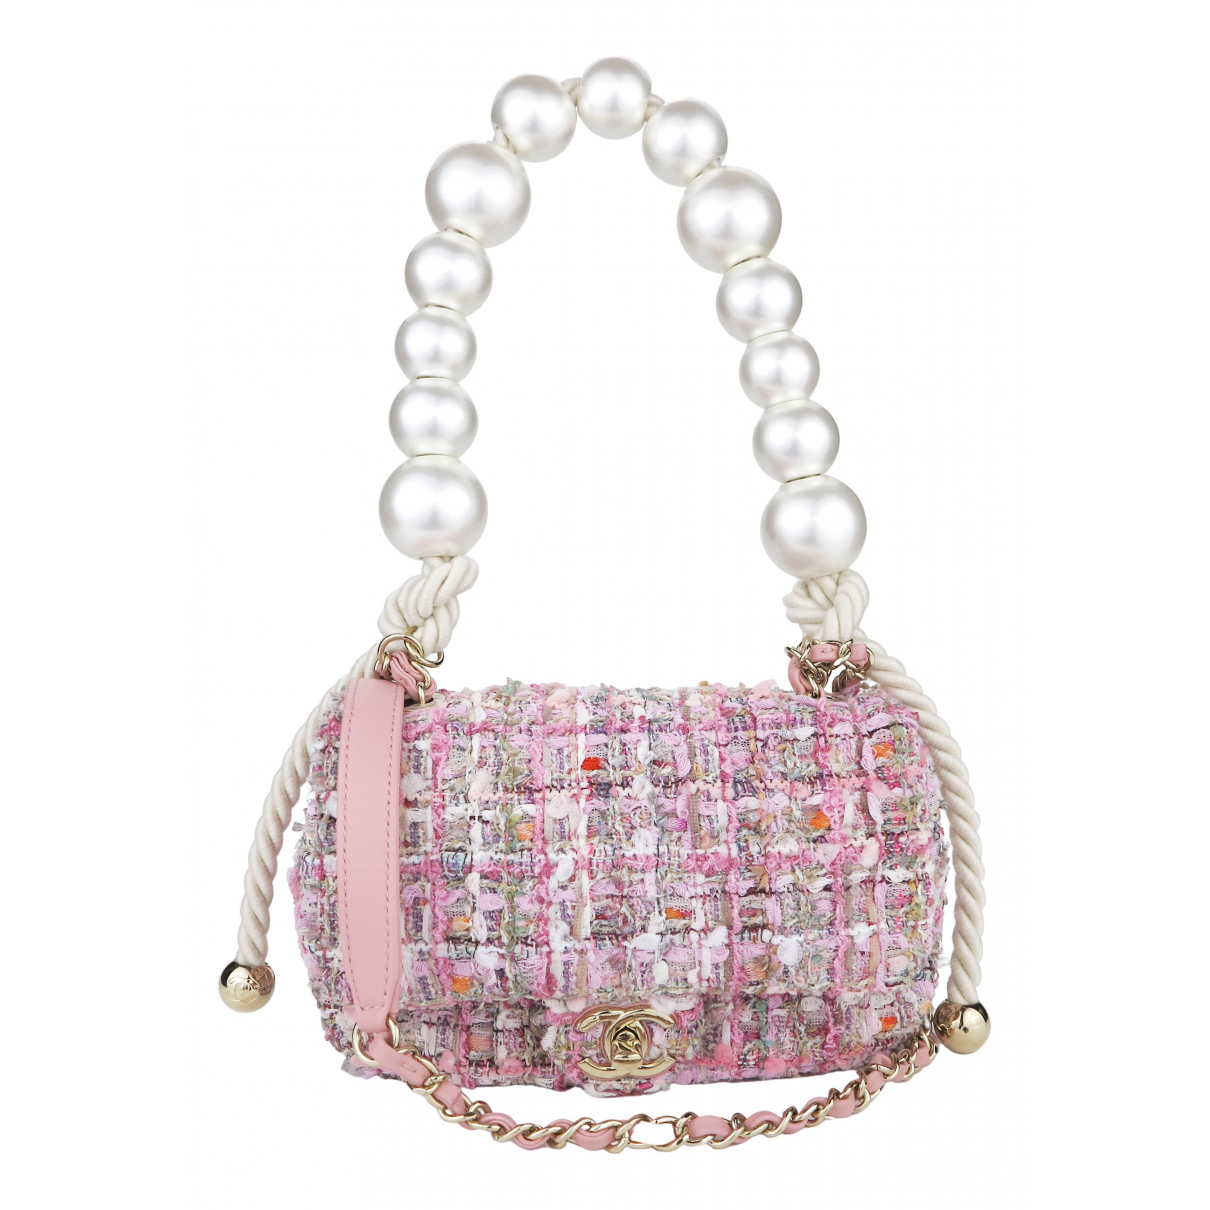 Chanel N Pink Tweed handbag for Women N